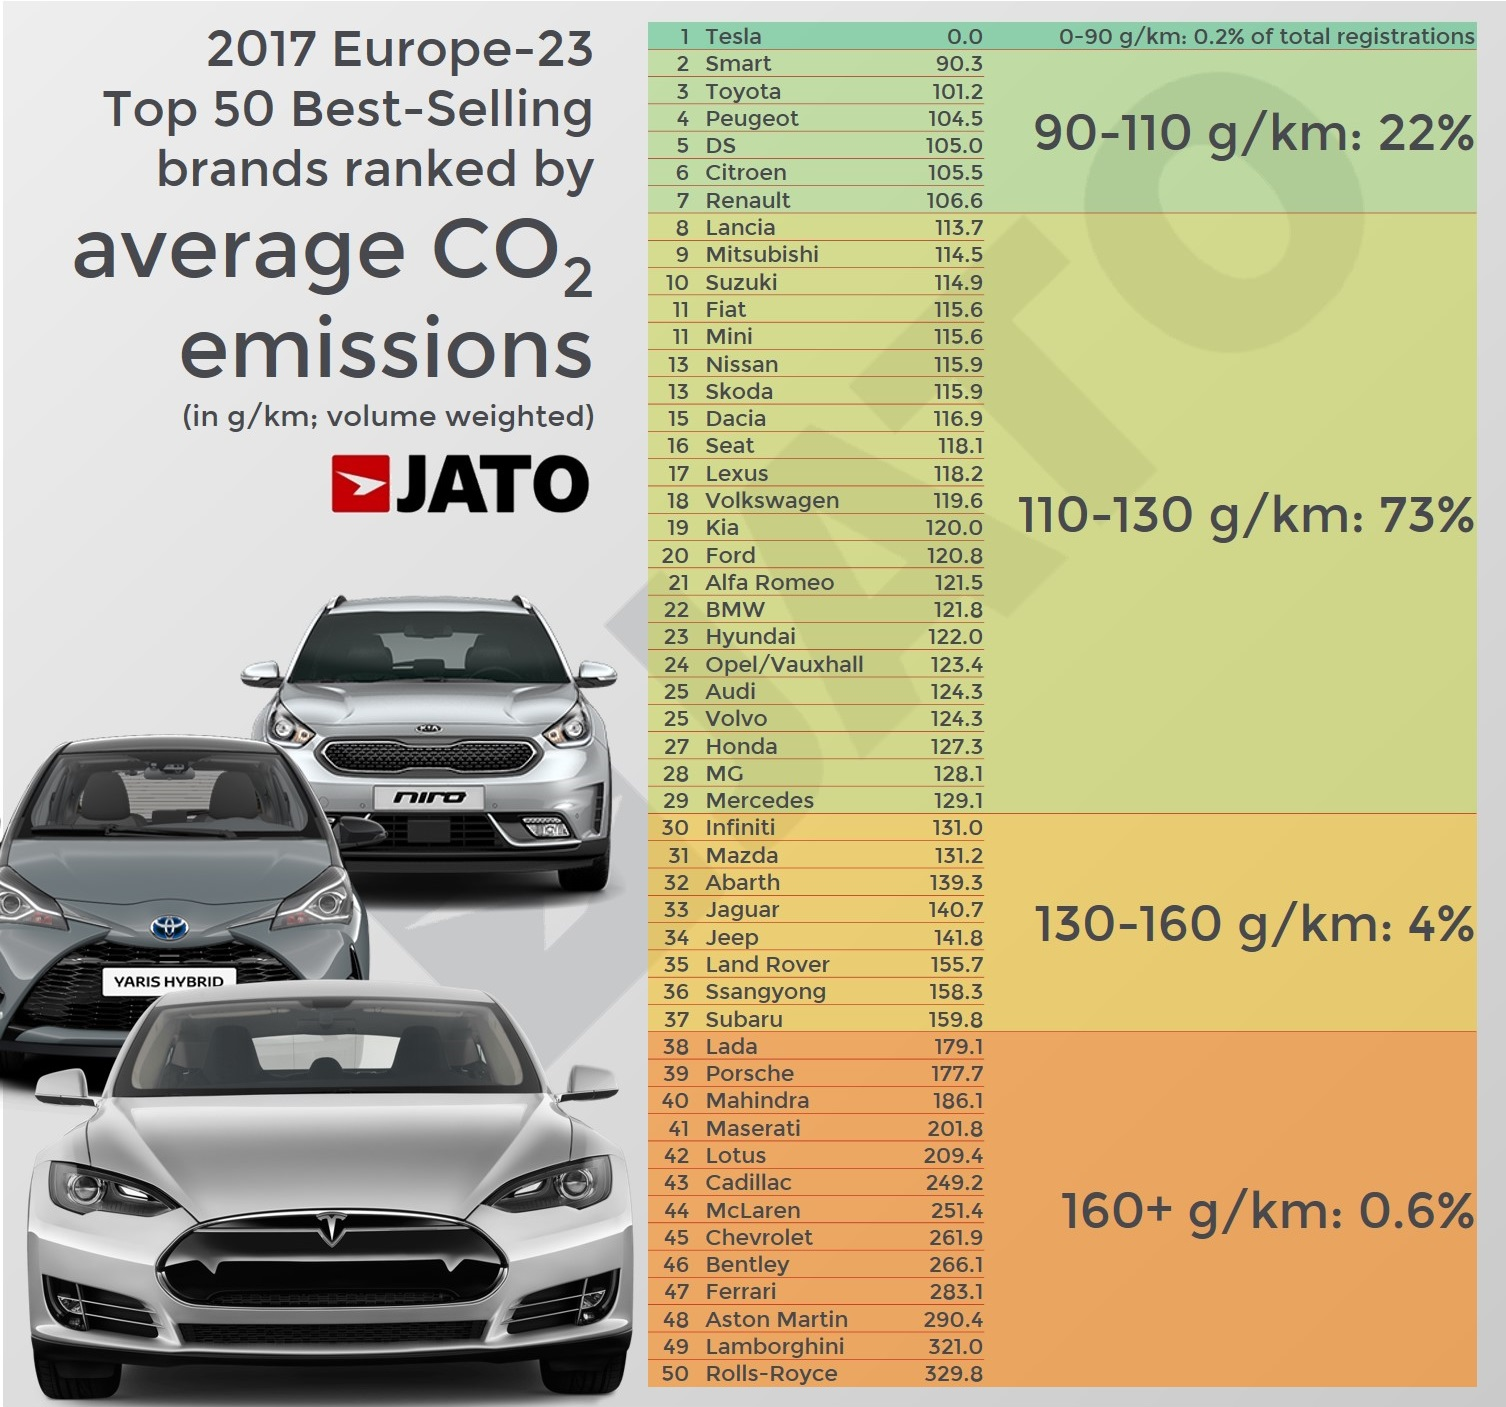 Nds With Average Co2 Emissions Between 110 130 G Km Counted For 73 Of European Car Regs In 2017